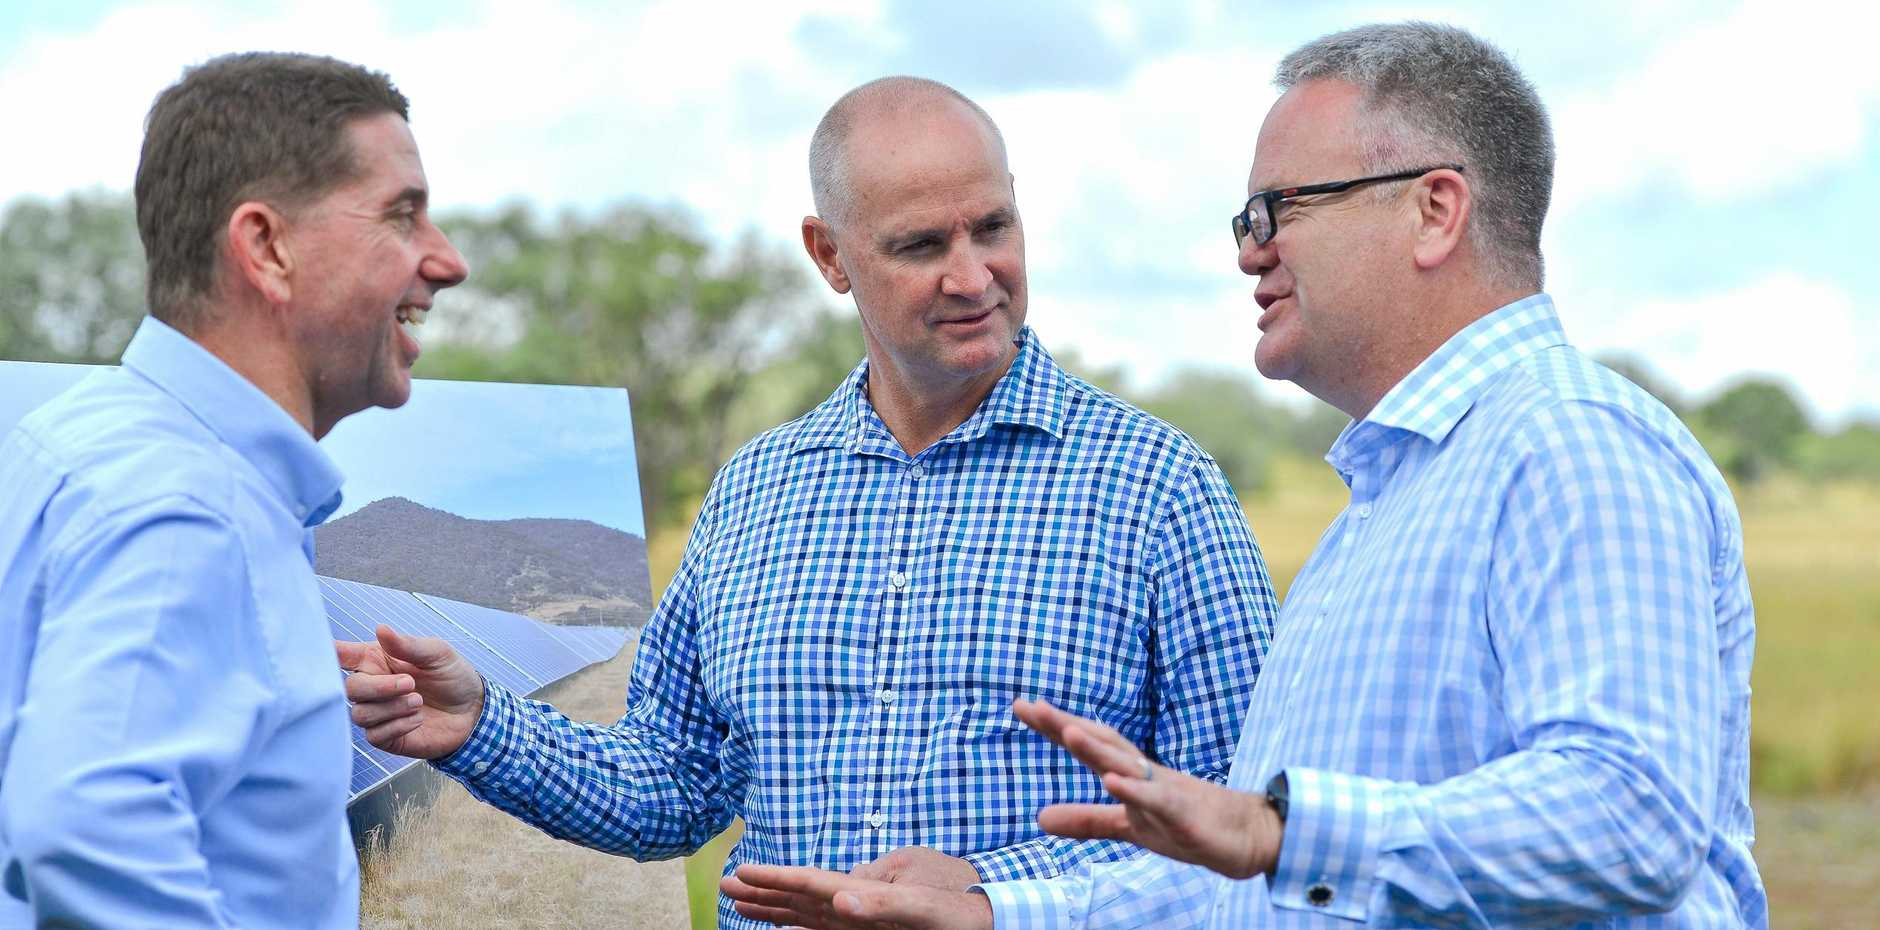 BIG BOOST FOR REGION: Infrastructure and Planning minister Cameron Dick, Member for Gladstone Glenn Butcher with Acciona Energy managing director Brett Wickham in Gladstone last month.